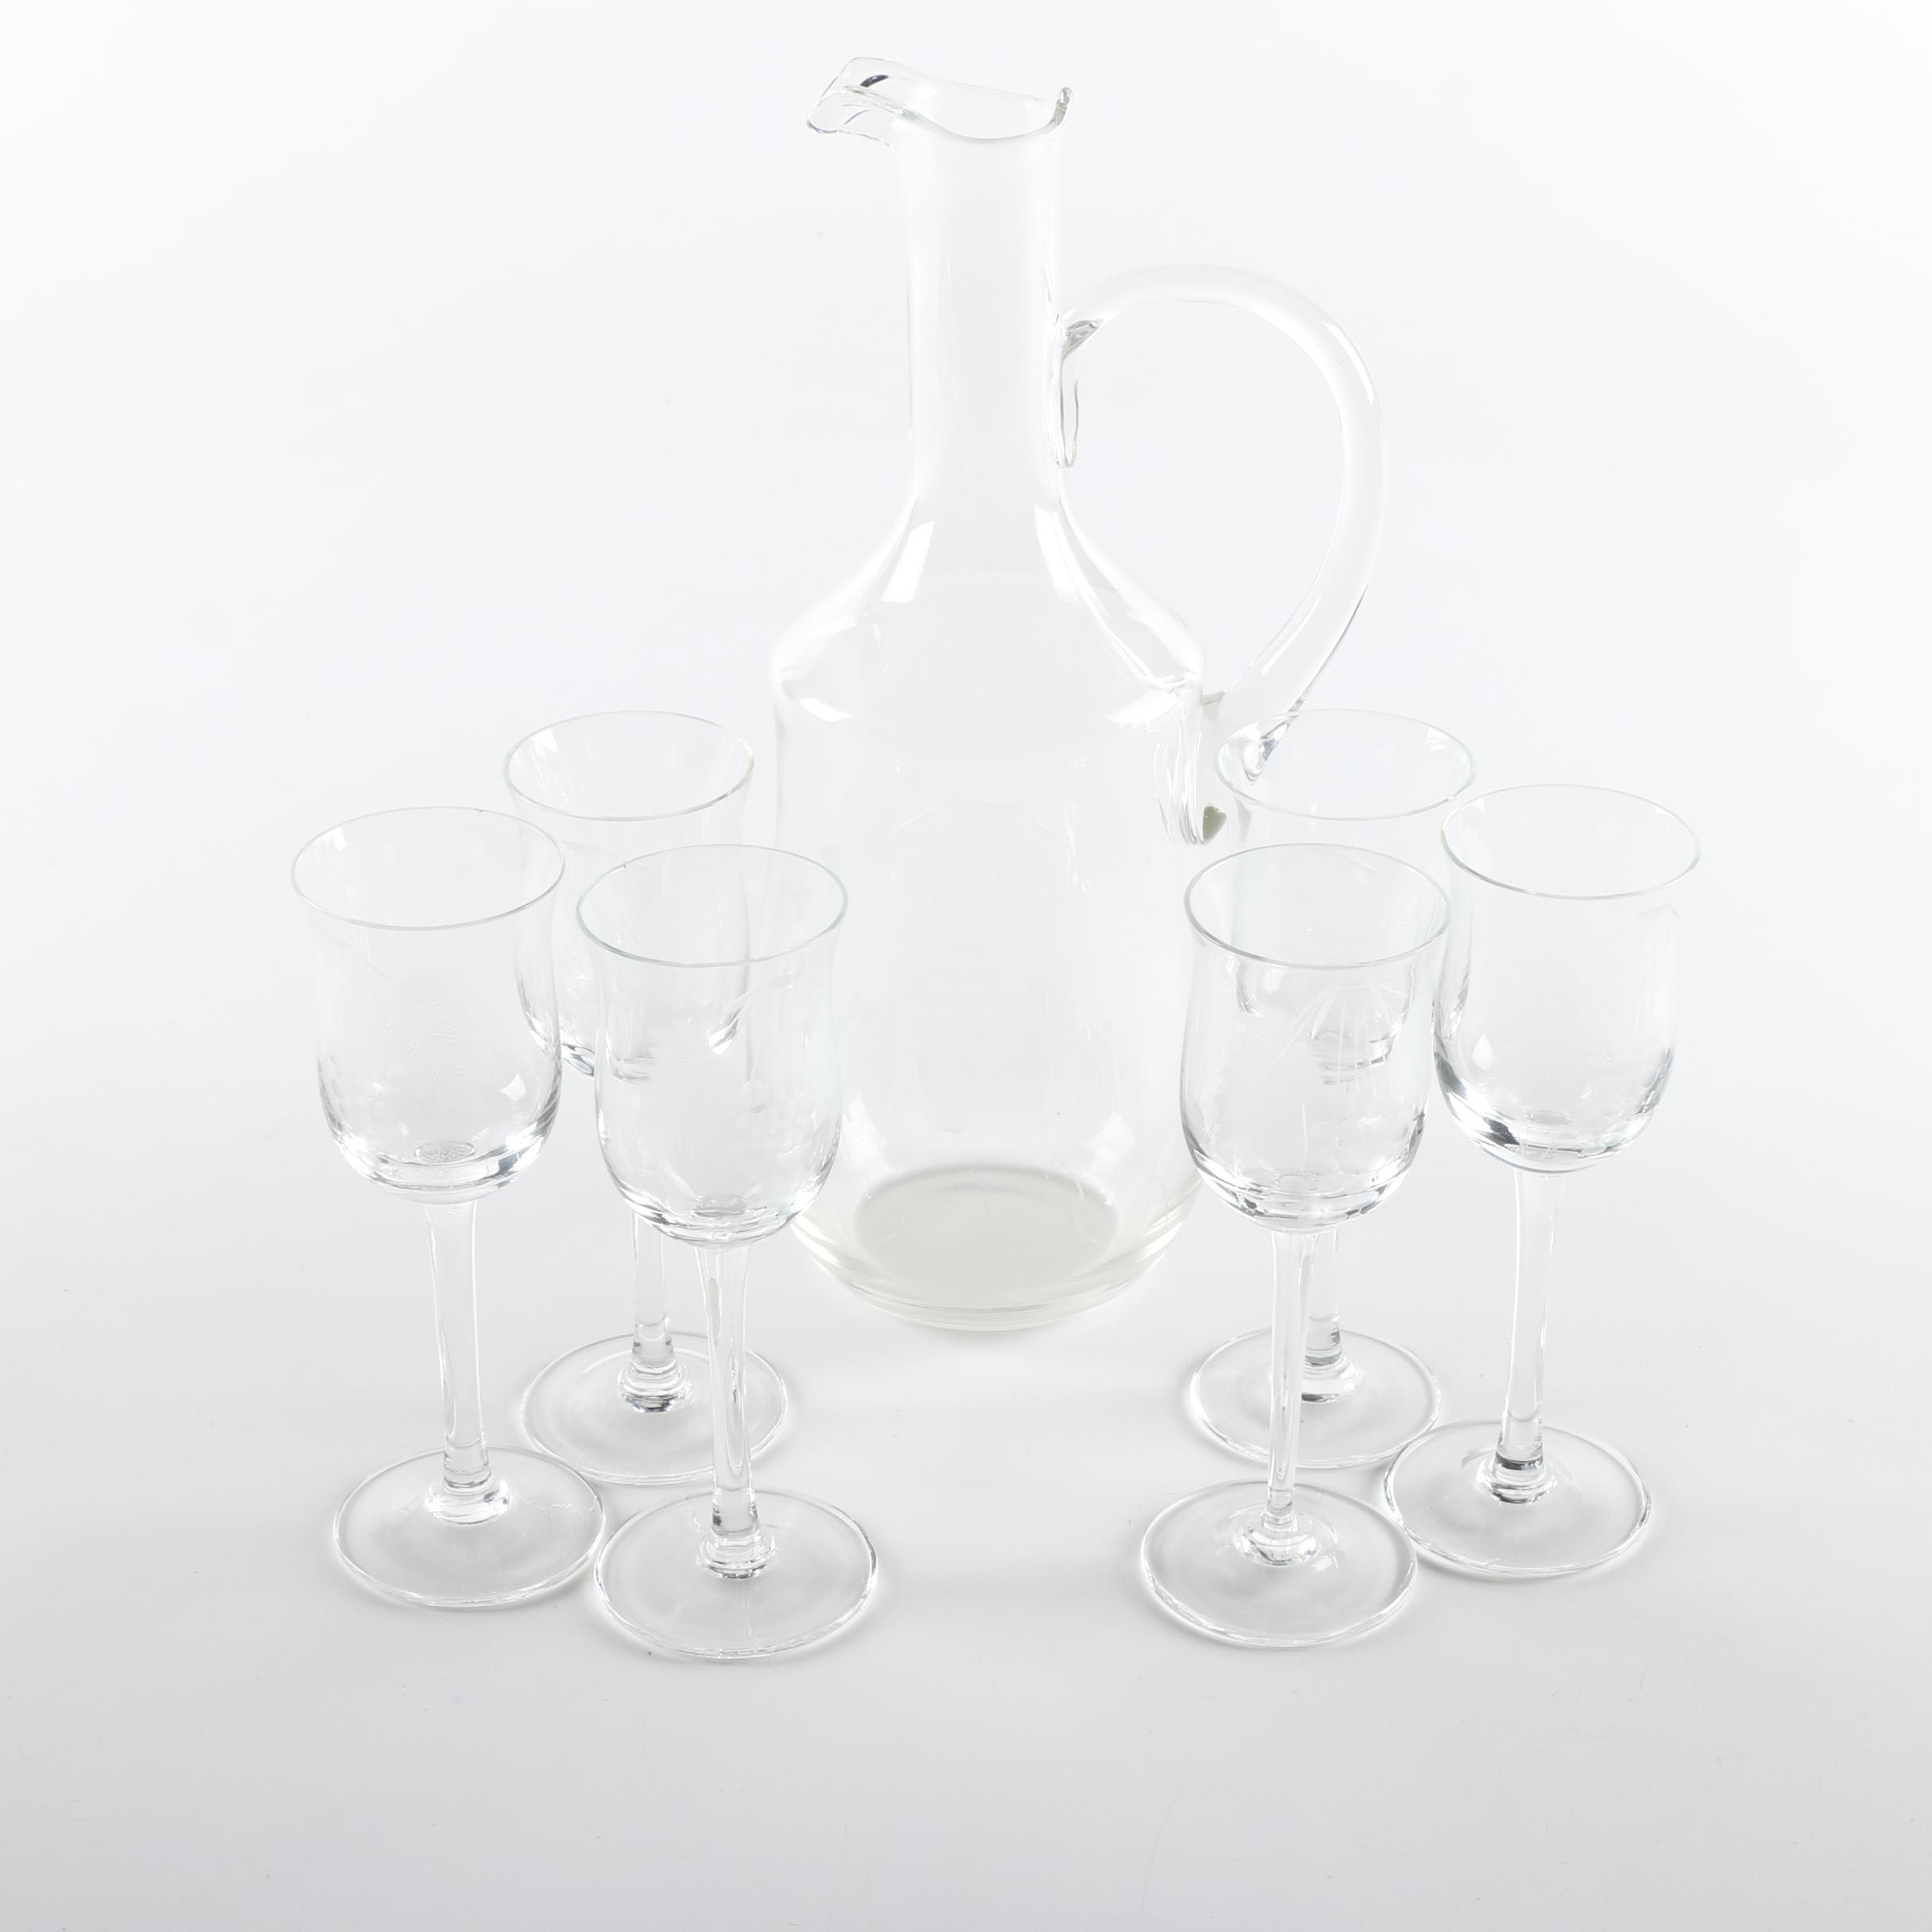 Blown Glass Decanter with Etched Cordial Glasses